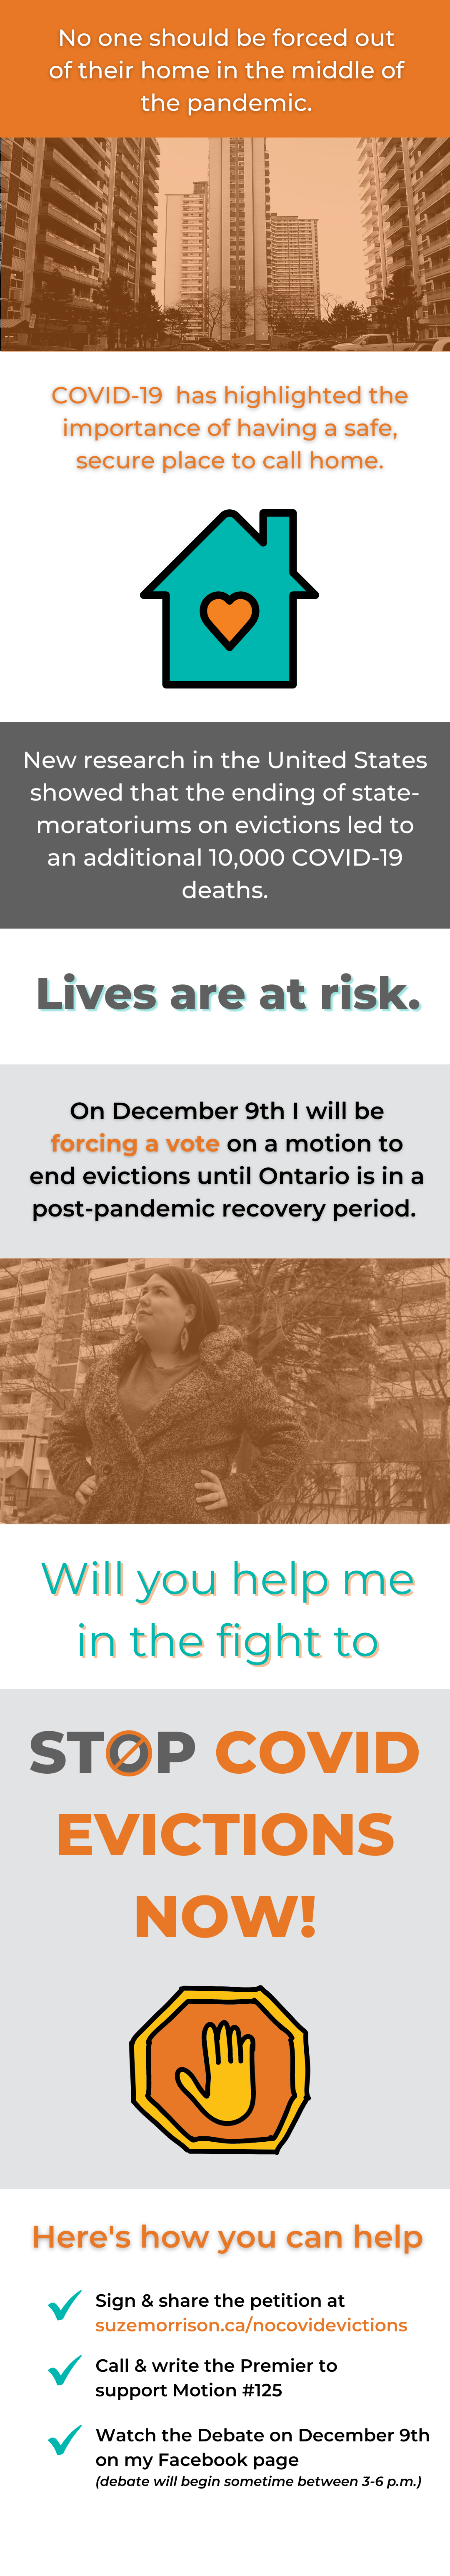 """""""No one should be forced out of their home in the middle of the pandemic. COVID-19  has highlighted the importance of having a safe secure pace to call home. New research in the United States showed that the ending of state-moratoriums on evictions led to an additional 10,000 COVID-19 deaths. Lives are at risk. On December 9th I will be forcing a vote on a motion to end evictions until Ontario is in a post-pandemic recovery period. Will you help me in the fight to STOP COVID Evictions NOW! Here's how you can help"""